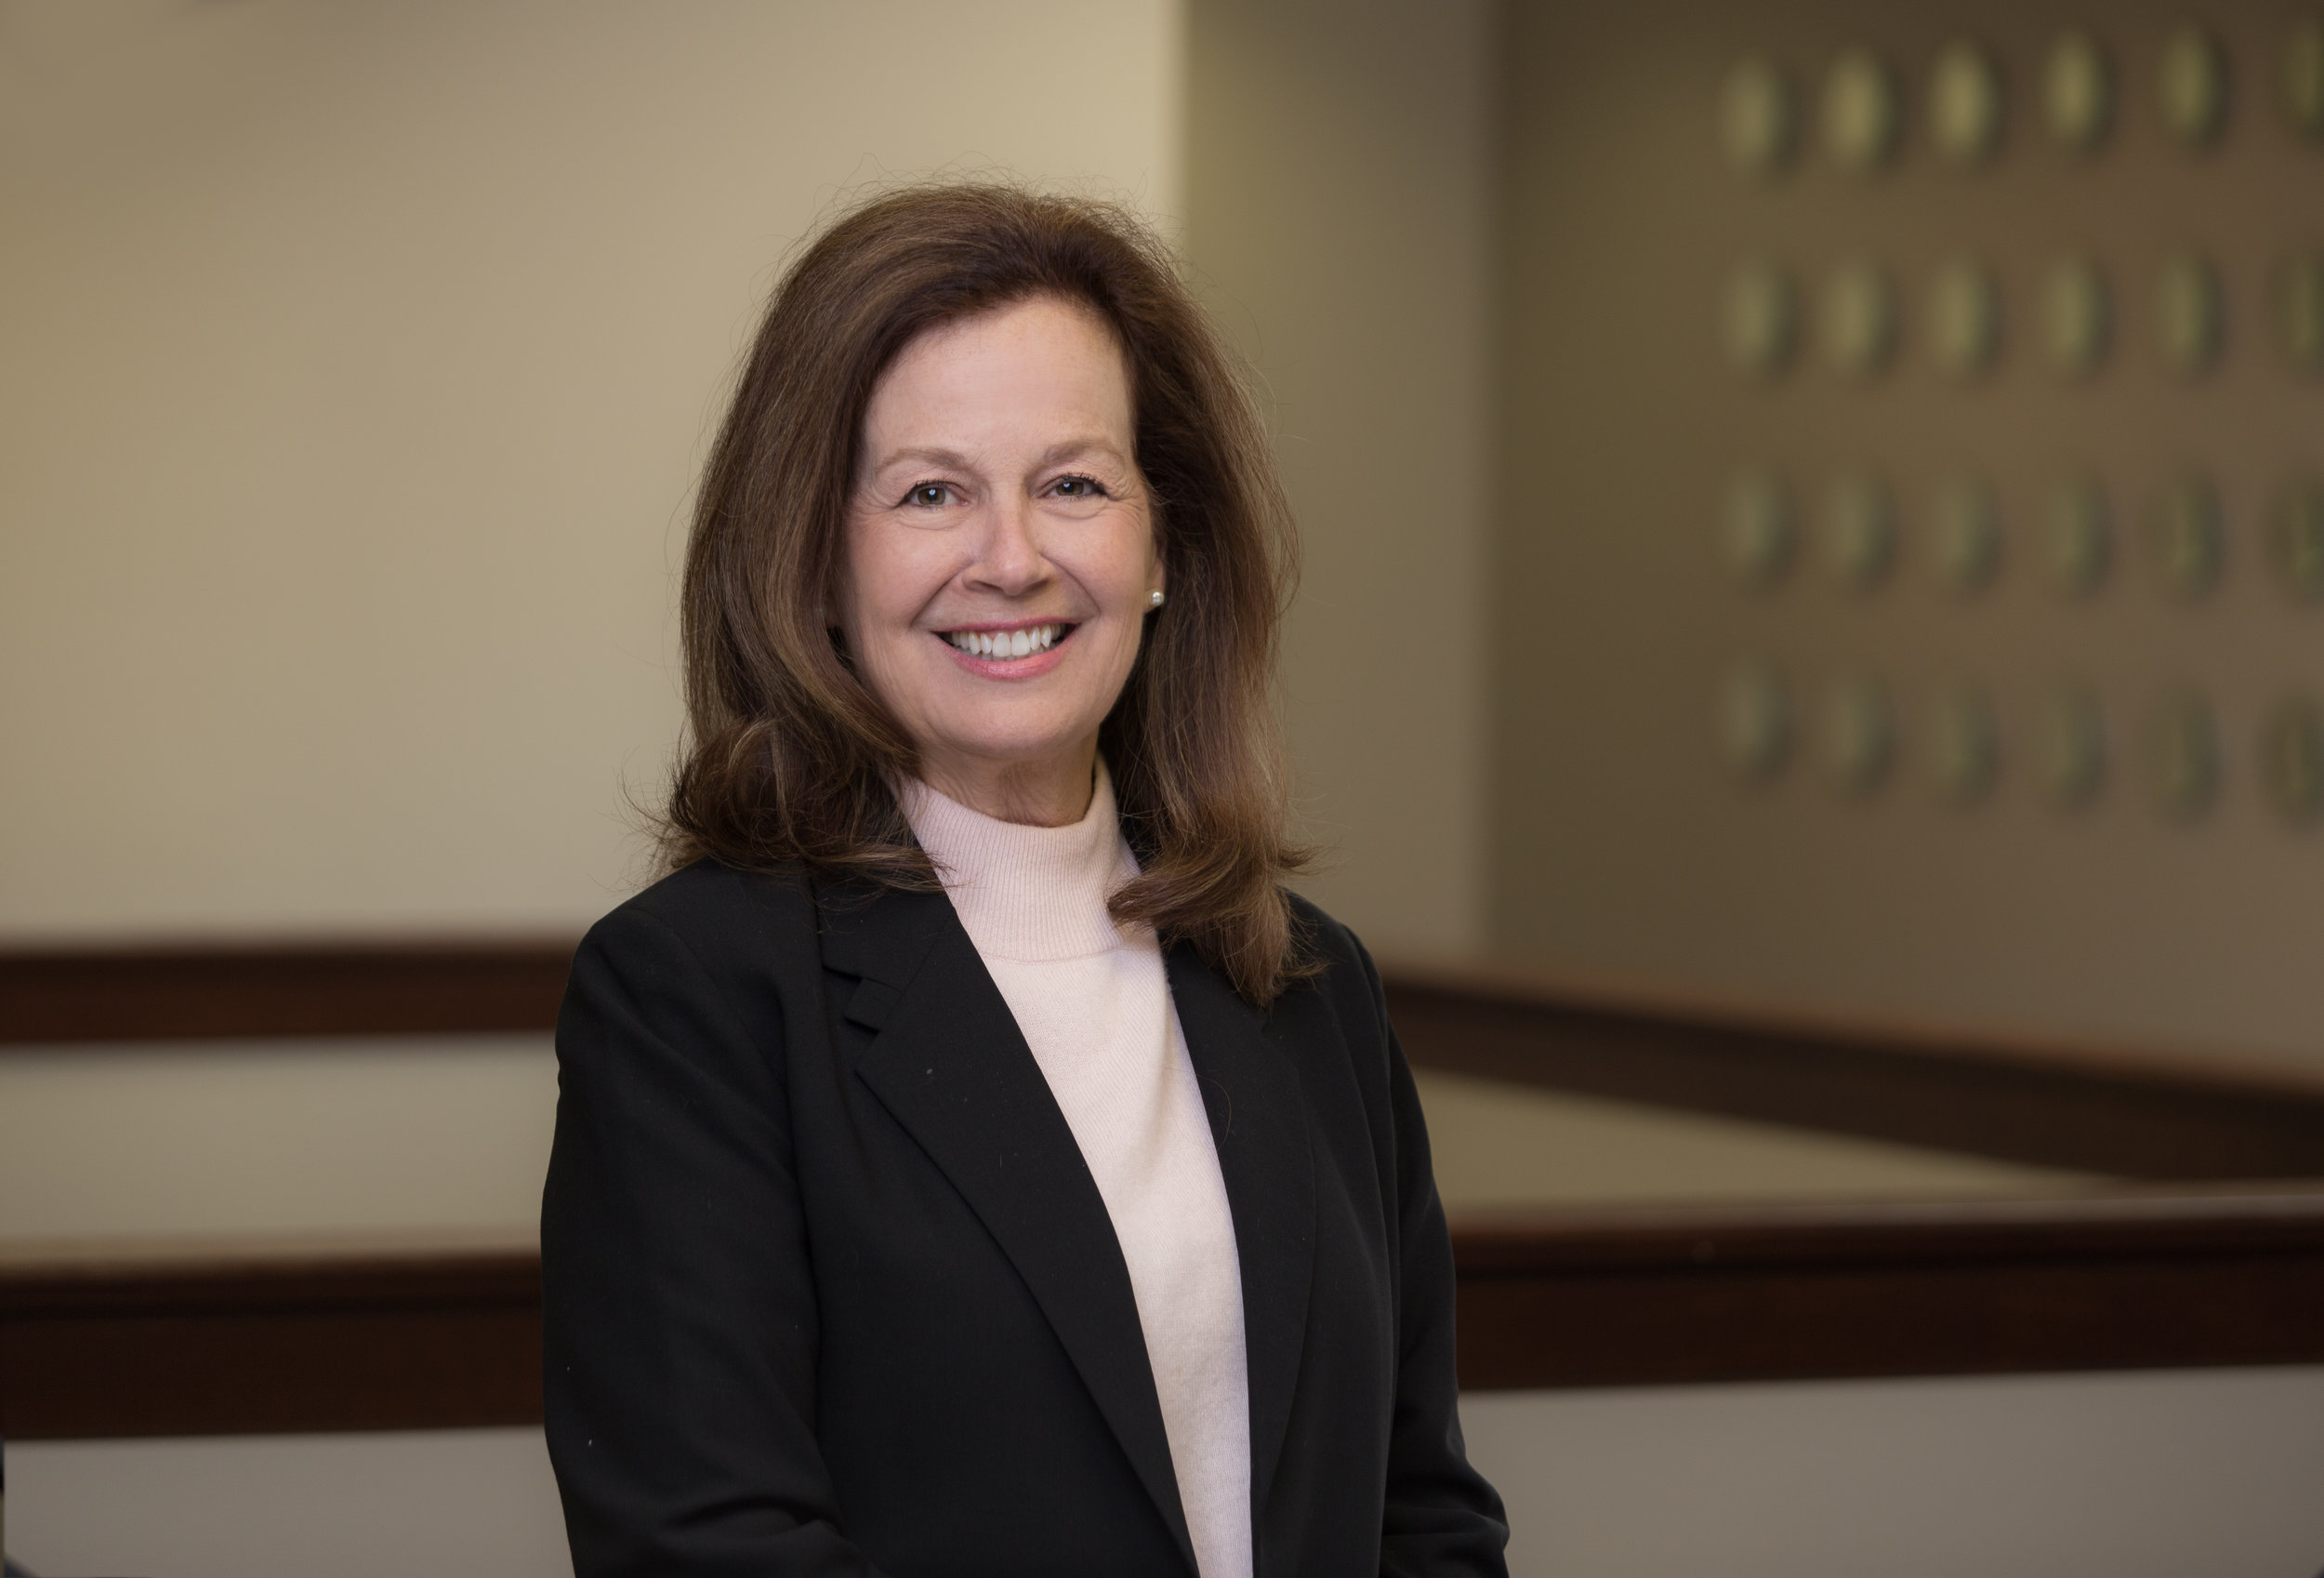 Kathleen Bogan - Account ExecutiveKathleen lives in Grand Forks, ND. She began at Vaaler Insurance in 2019, and worked for over 30 years with CIGNA beforehand. Kathleen enjoys helping those who are homeless and renovating furniture in her spare time.